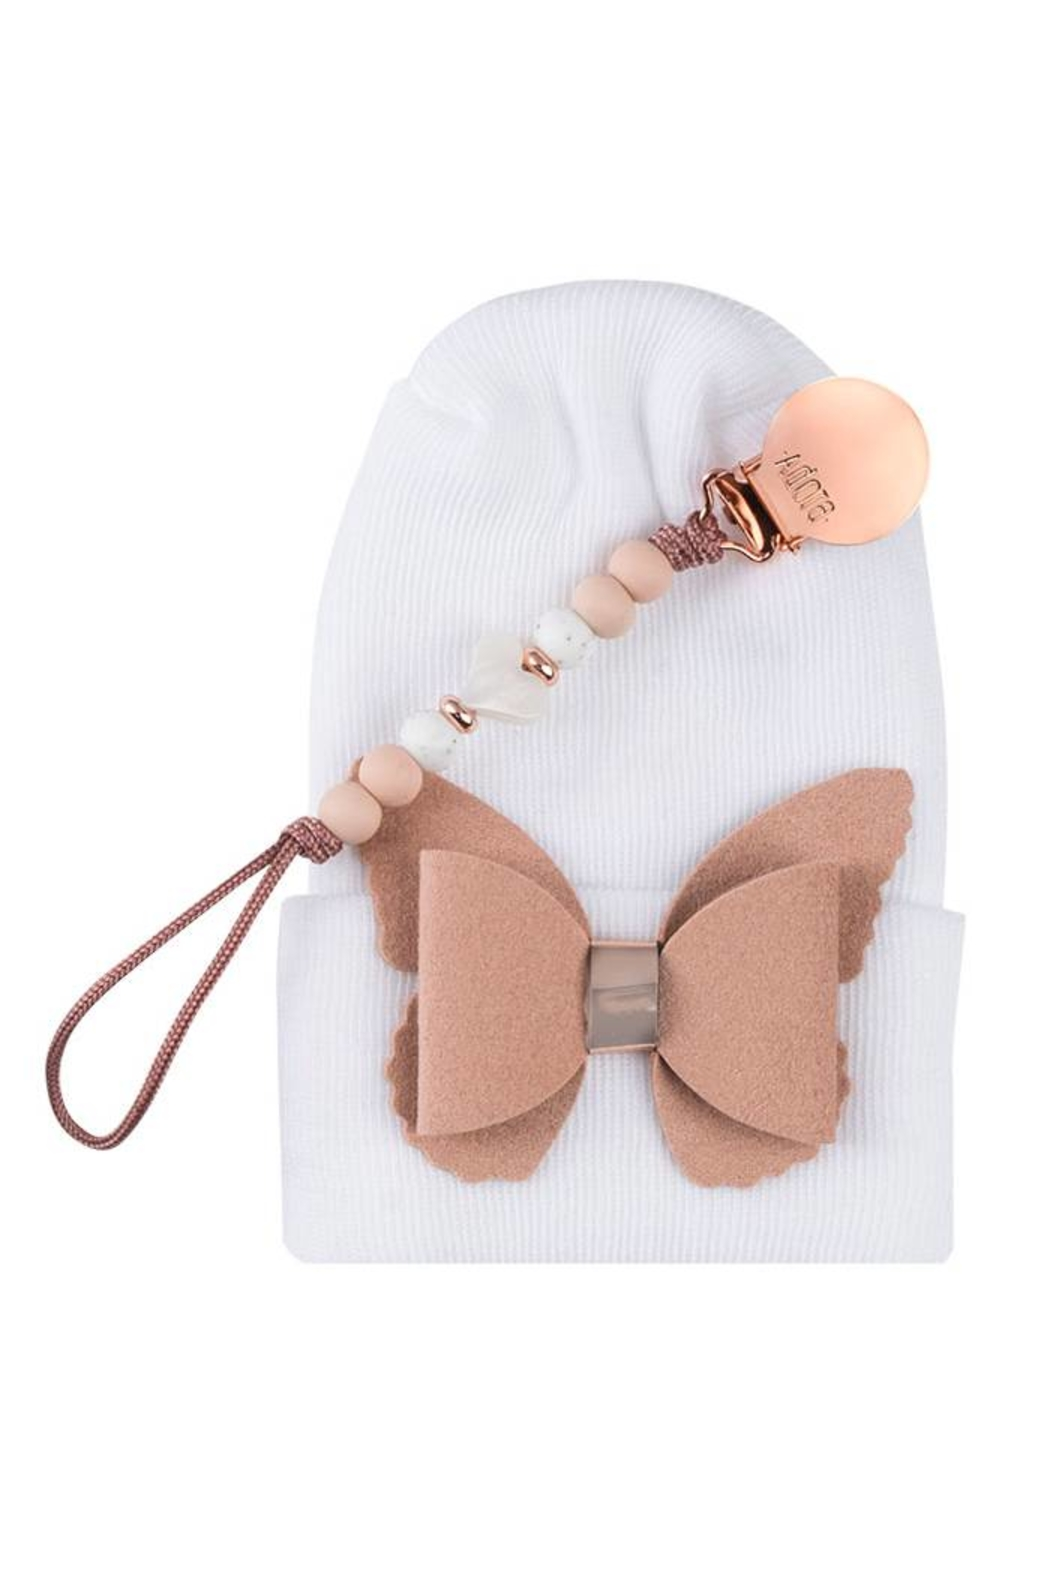 Adora Baby Nude Butterfly Gift Set For Girls Newborn(Hat + Pacifier Clip) - Main Image